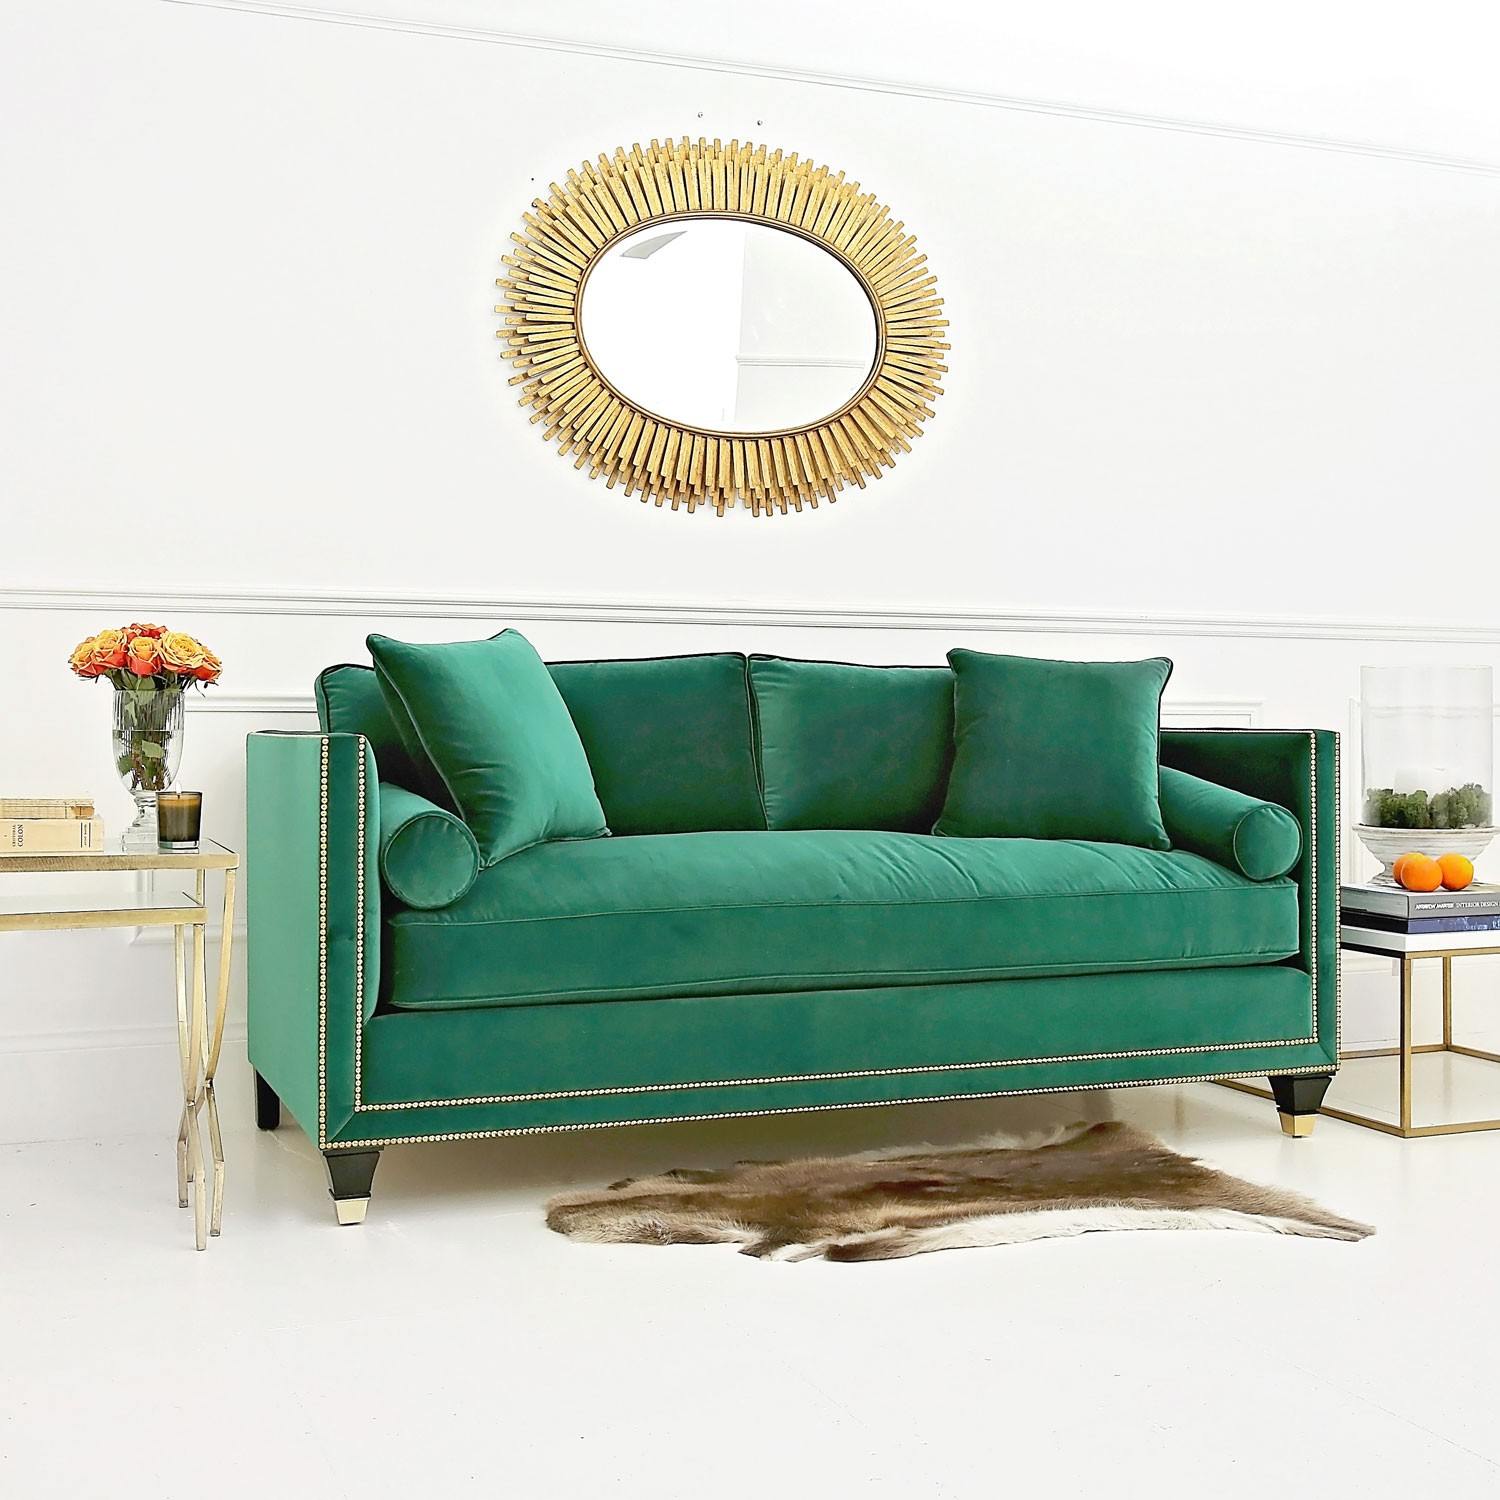 emerald green velvet sofa bed best type mattress the incredible selection of living room couches